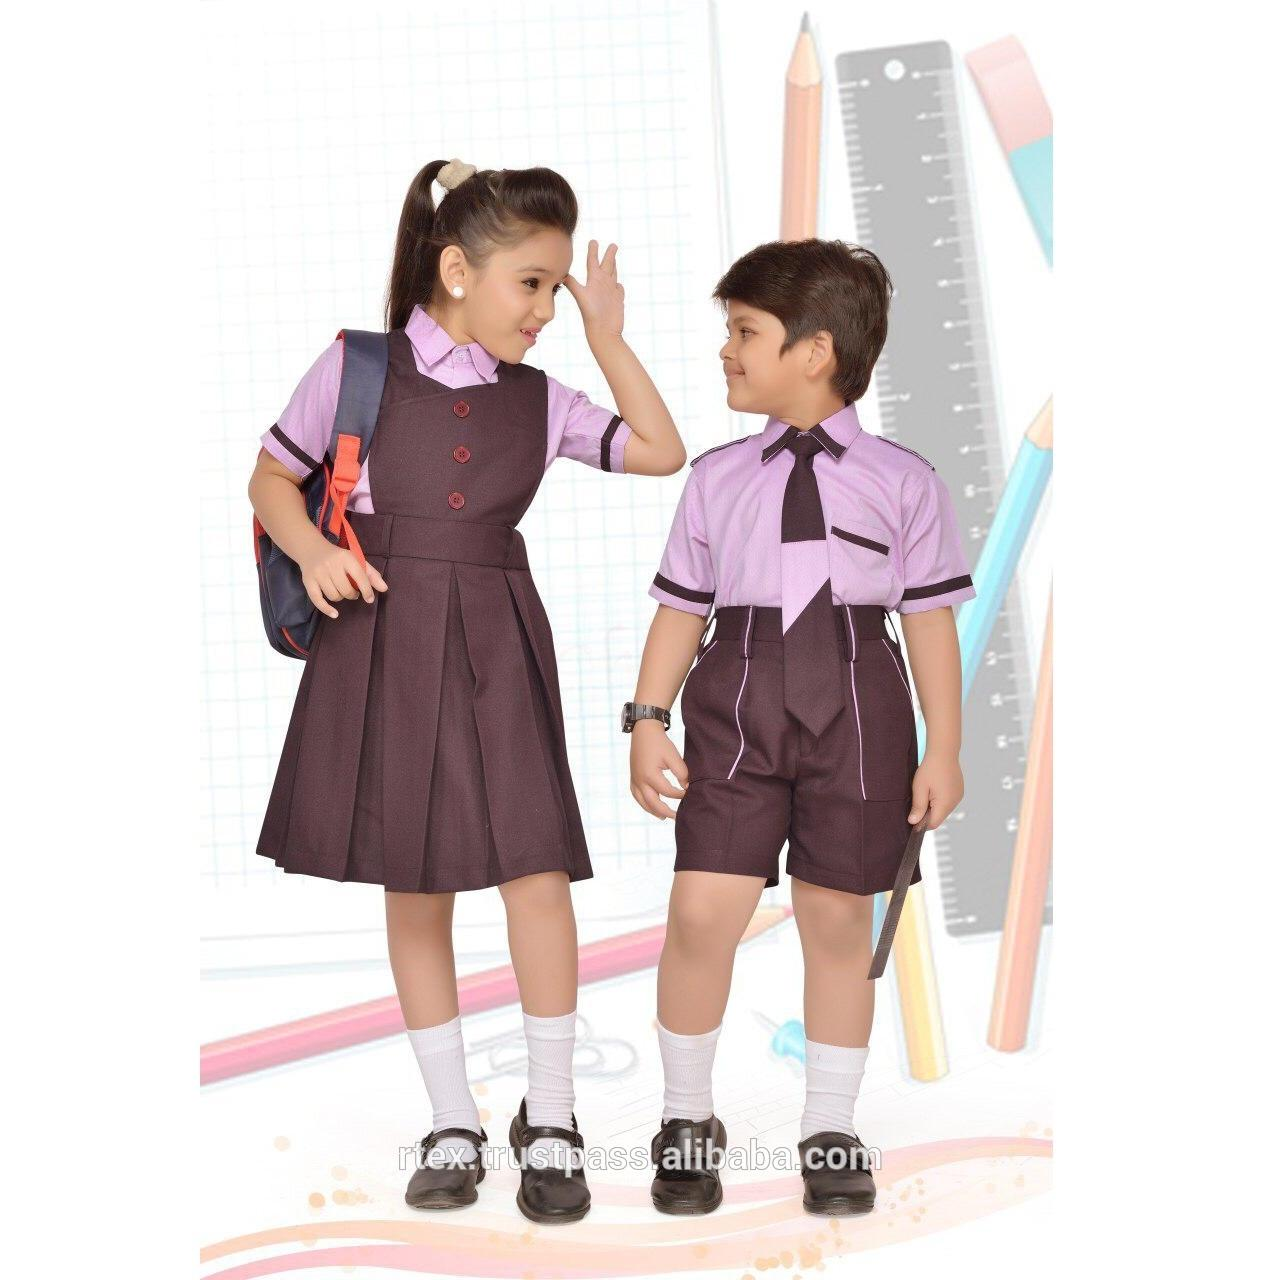 Plain color school uniform set for boys and girls for all age groups - S41